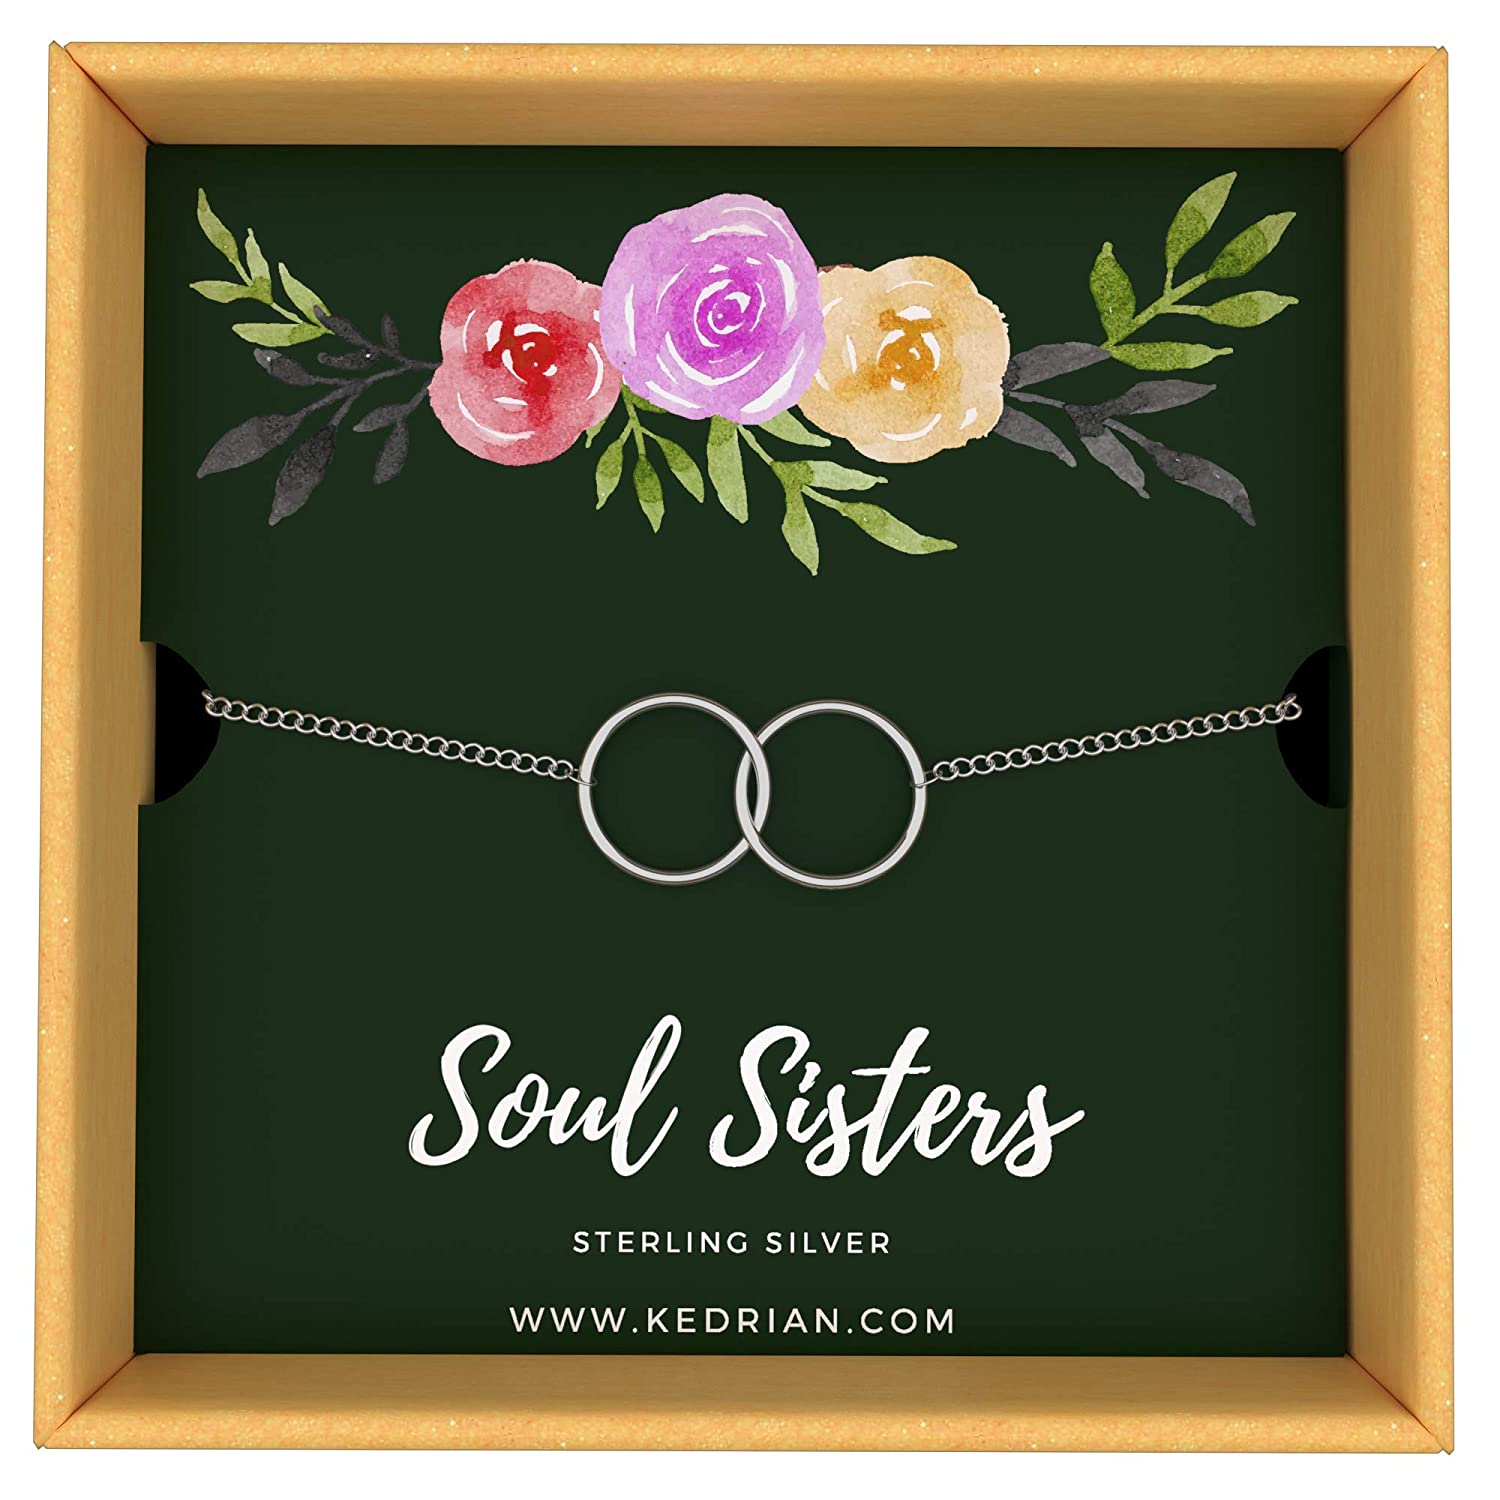 KEDRIAN Soul Sister Bracelet, 925 Sterling Silver, Ideal Soul Sister Gifts Women, Friendship Bracelet, Best Friend Bracelet, Friendship Gifts Women, Women